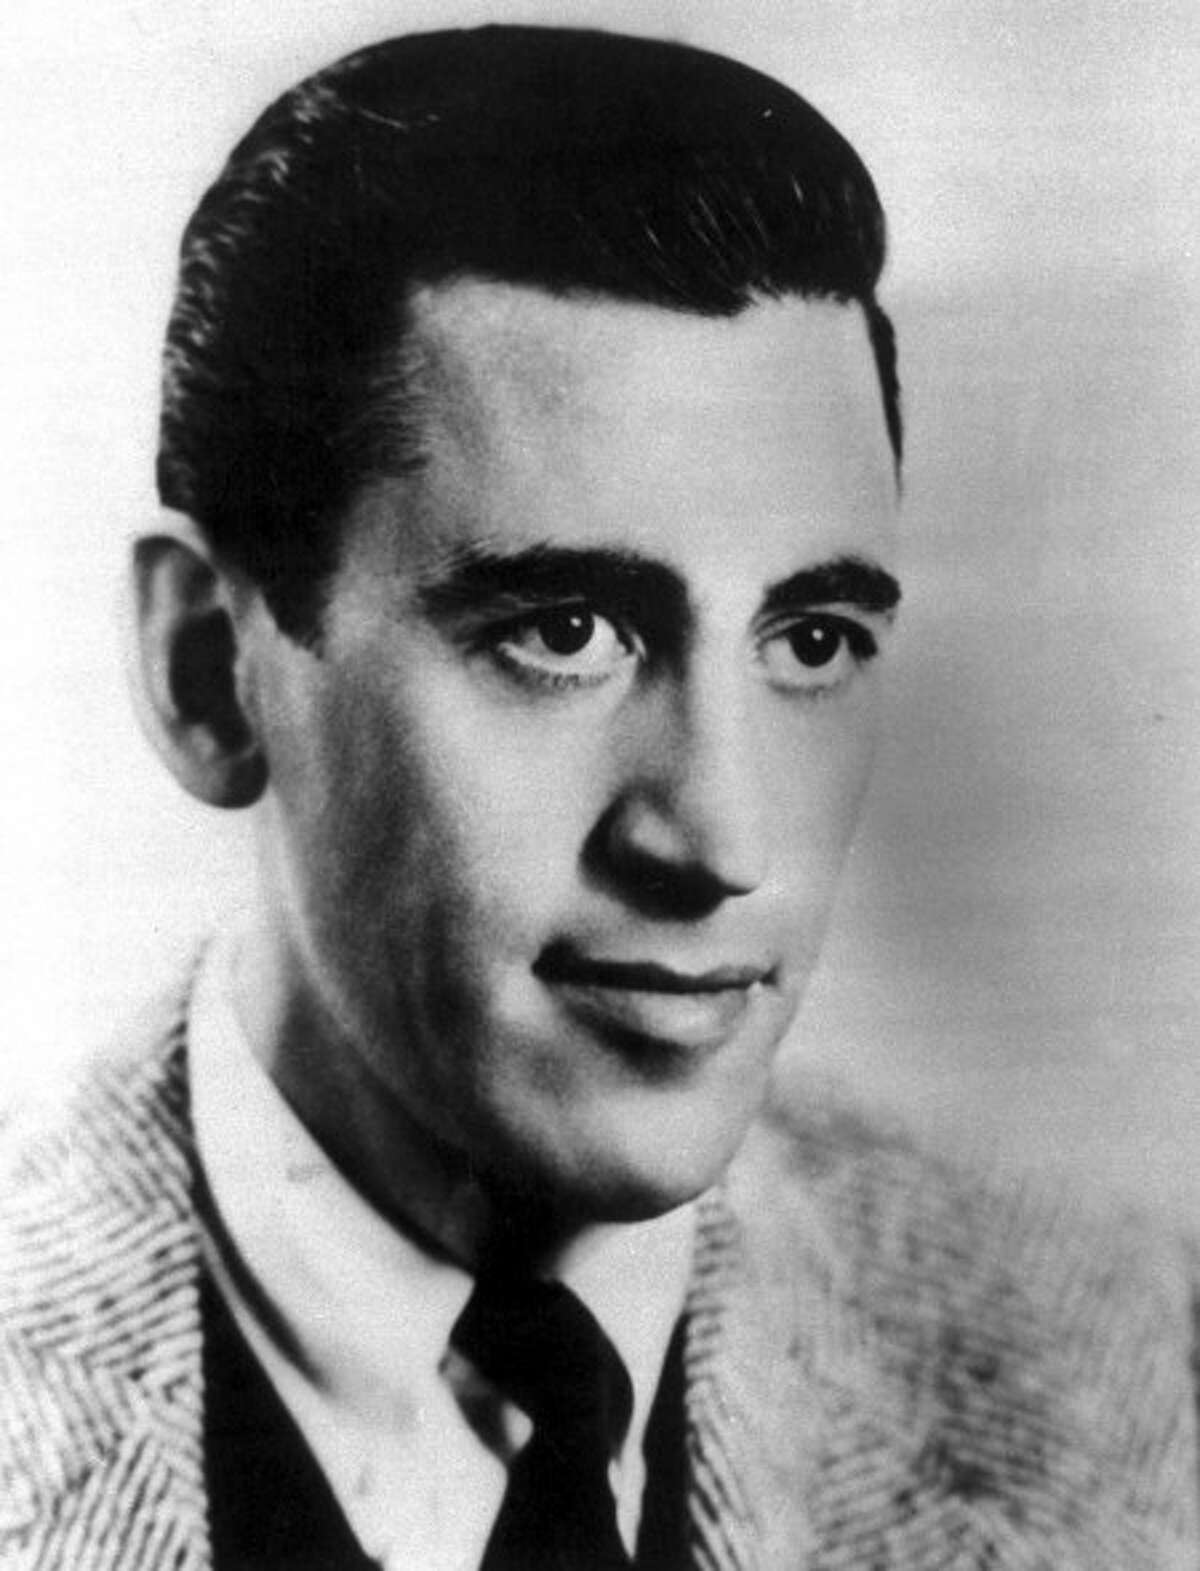 FILE - In this 1951 file photo, J.D. Salinger, author of